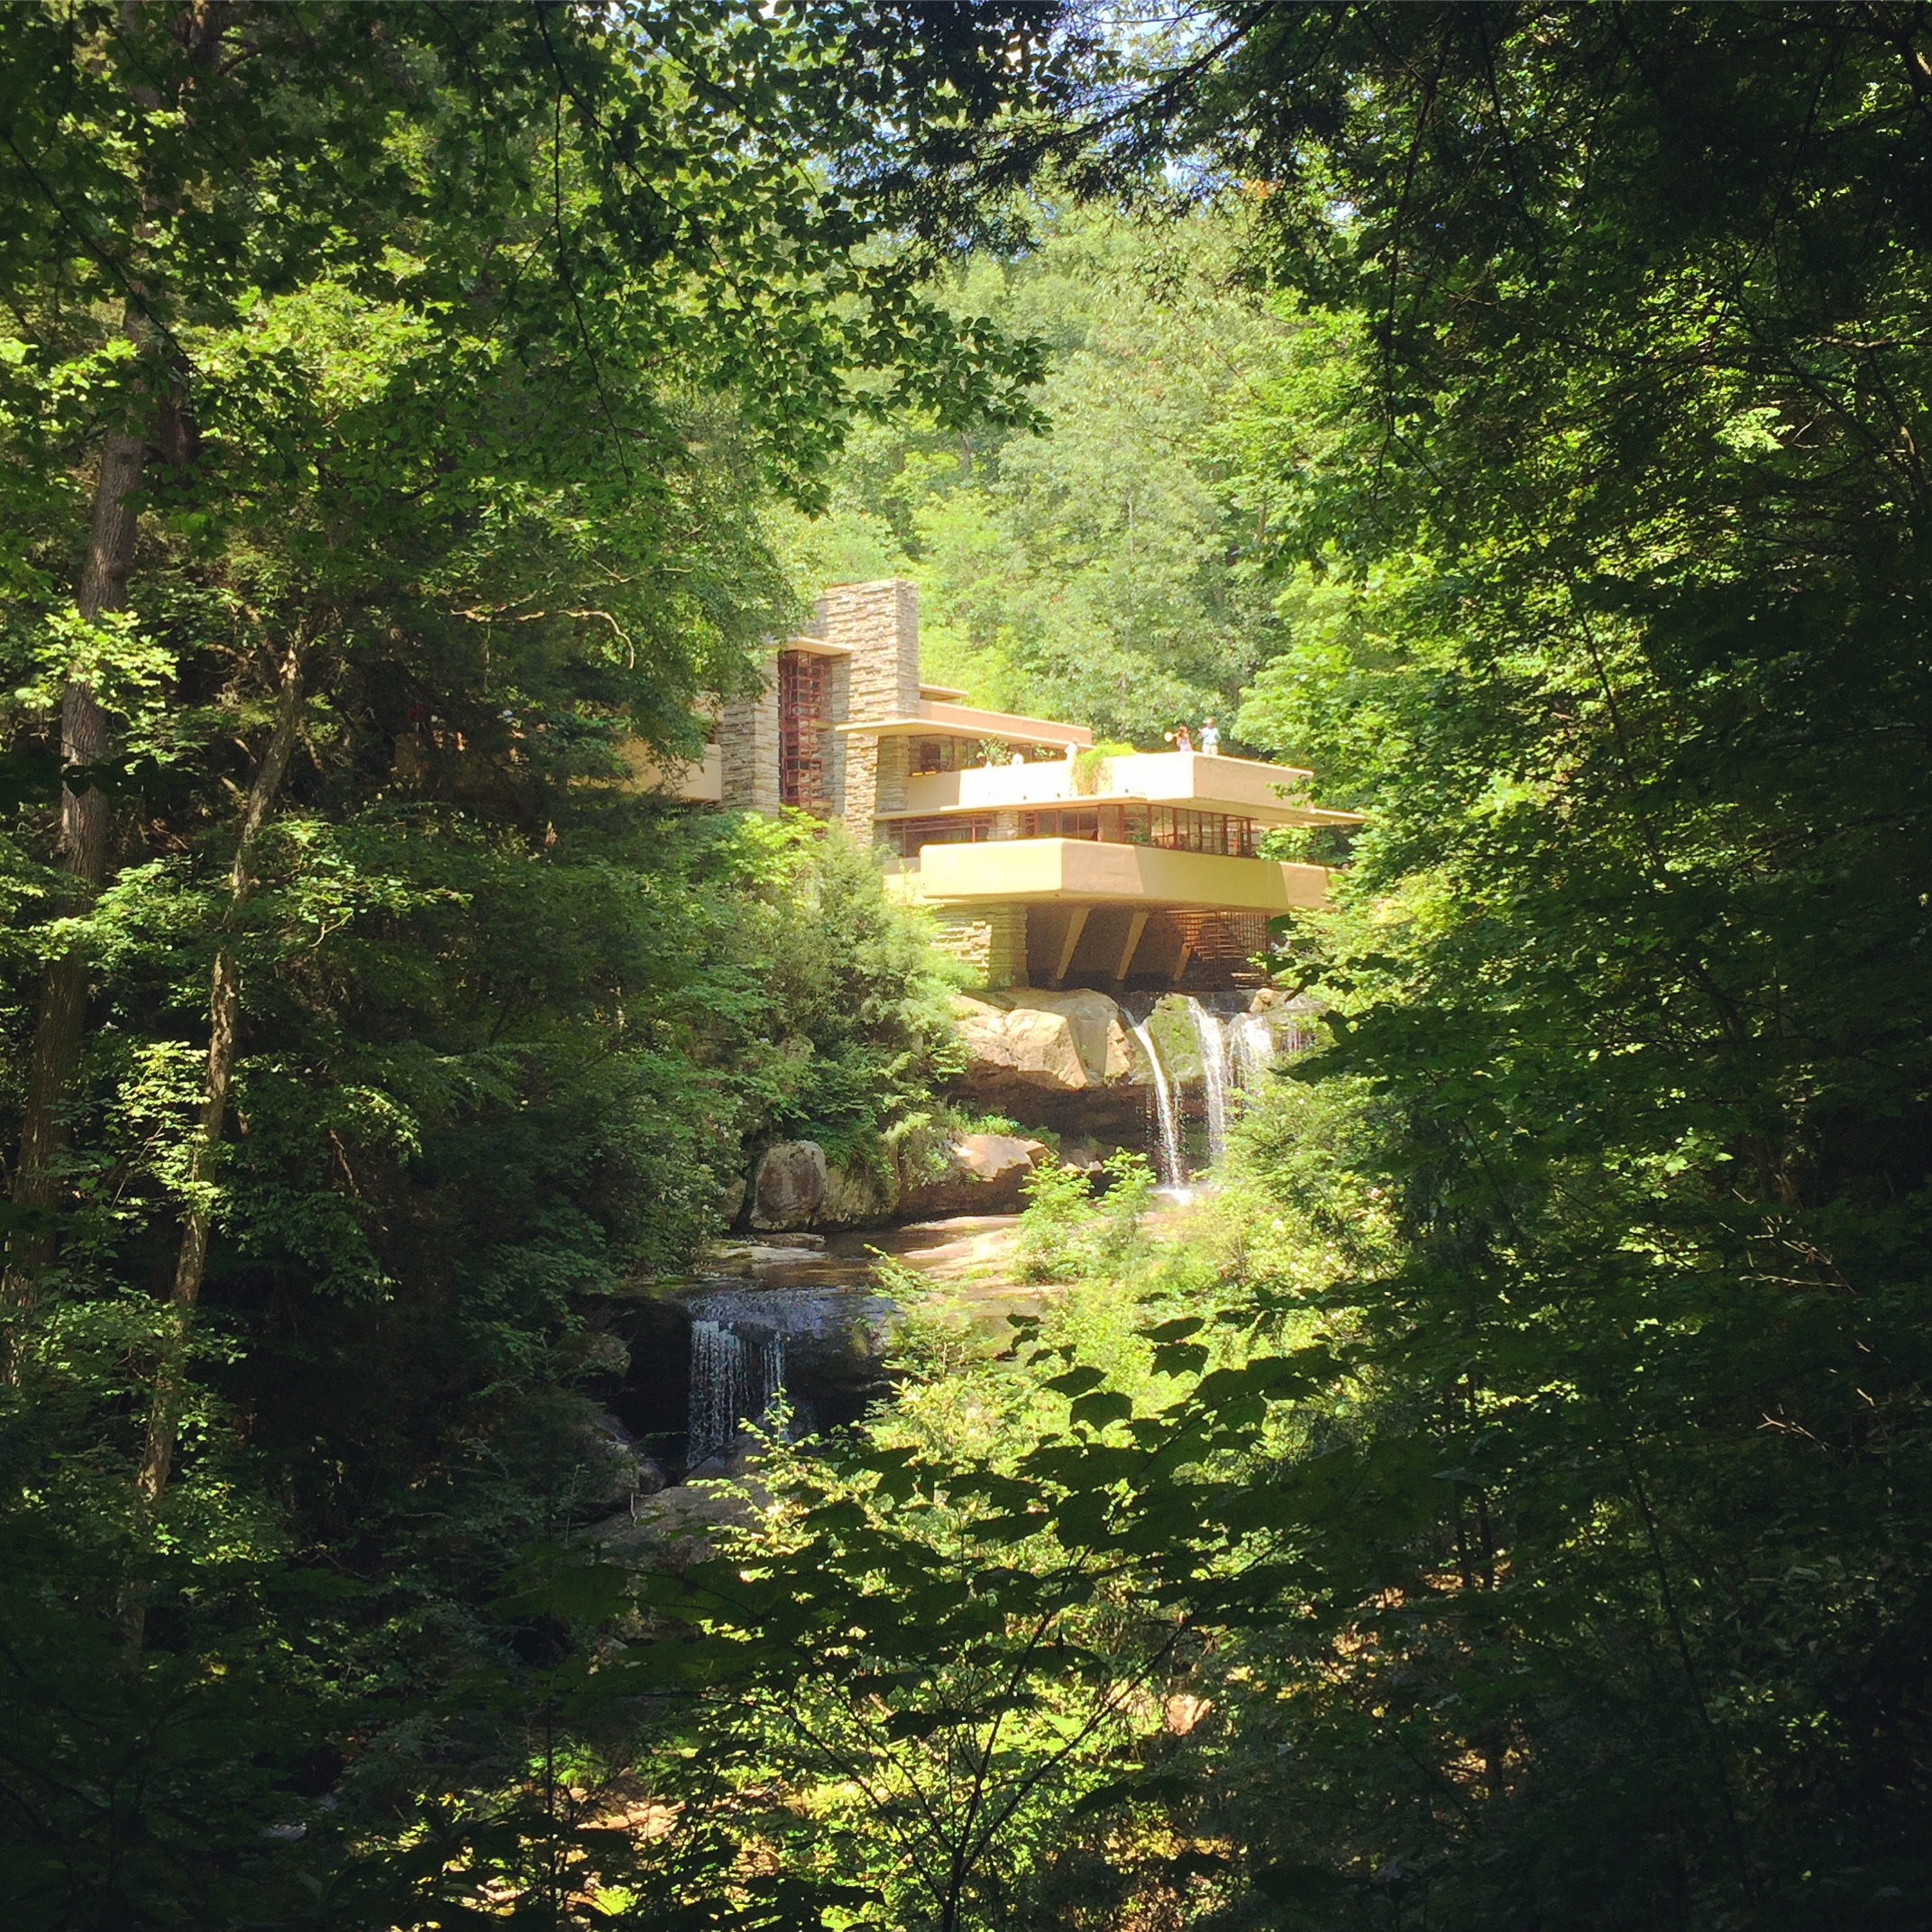 The aptly named Falling Water